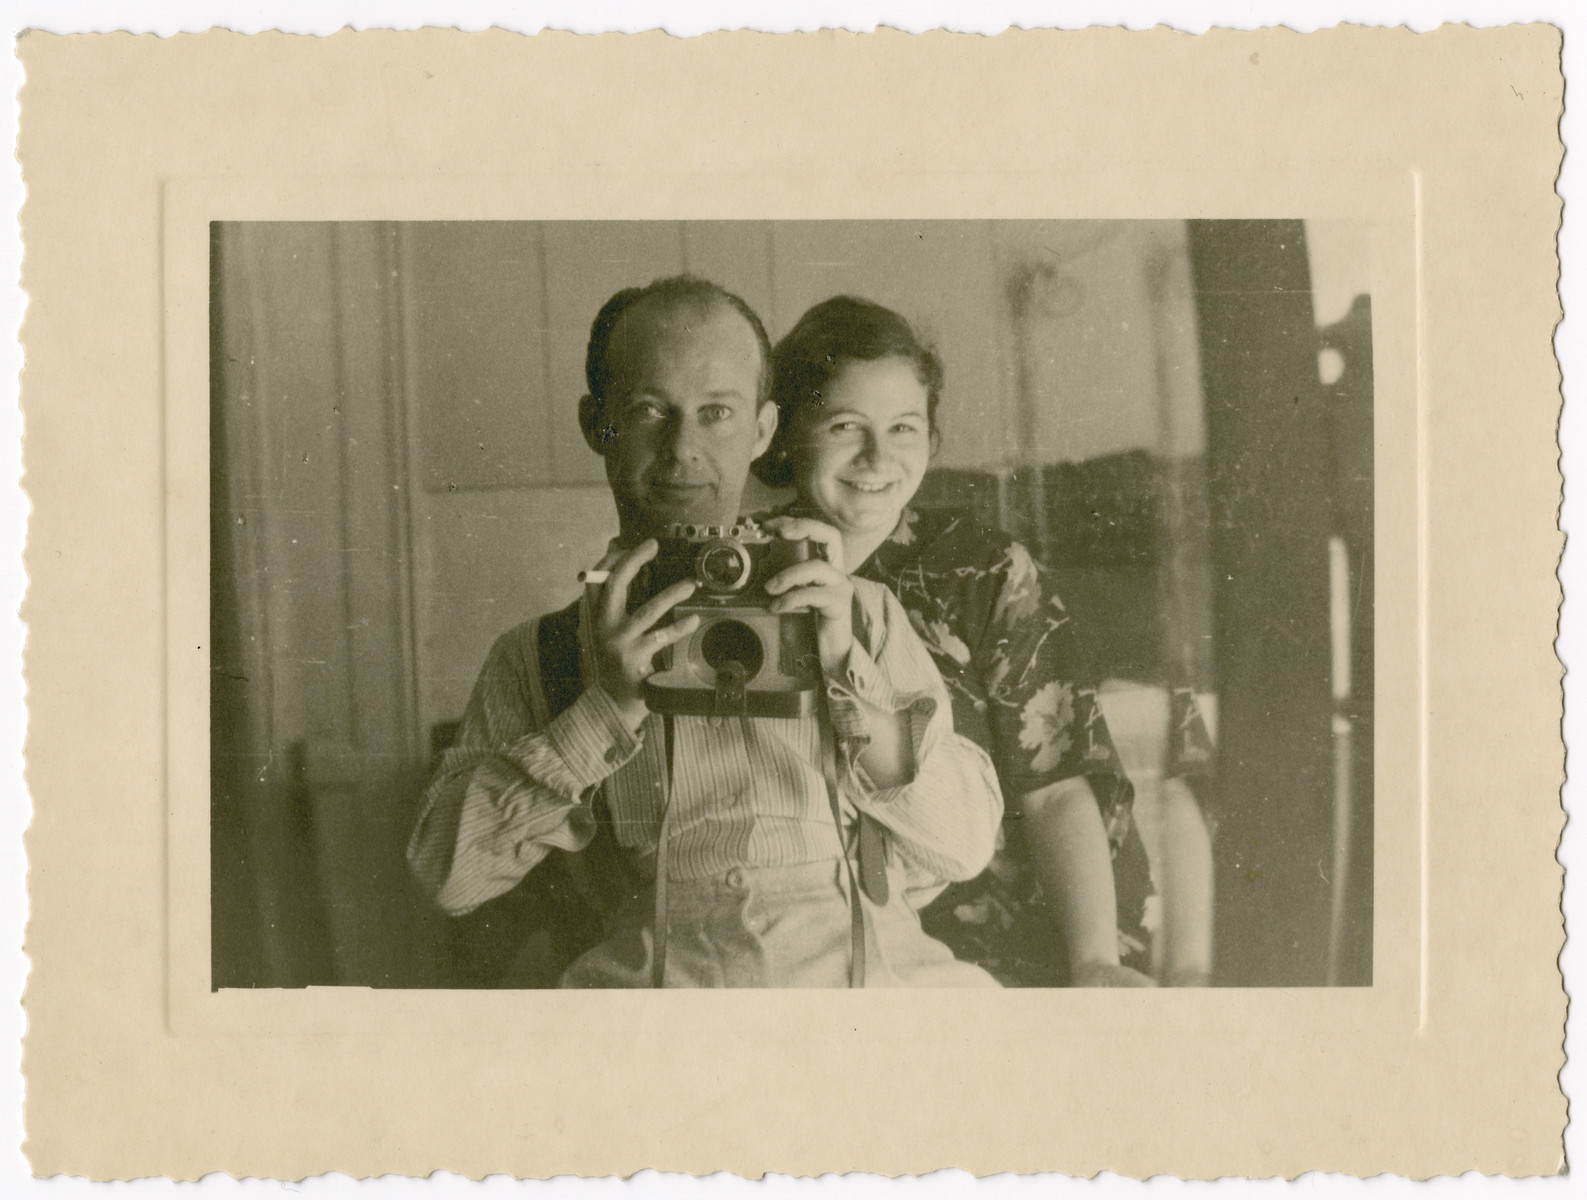 Portrait of Guido Nacamu posing with his camera and his wife Lisl Meier Nacamu.  Guido was from Ancona, Lisl from Germany. They lived in Milan before moving to New York in 1939 due to the racial laws in Germany and Italy.